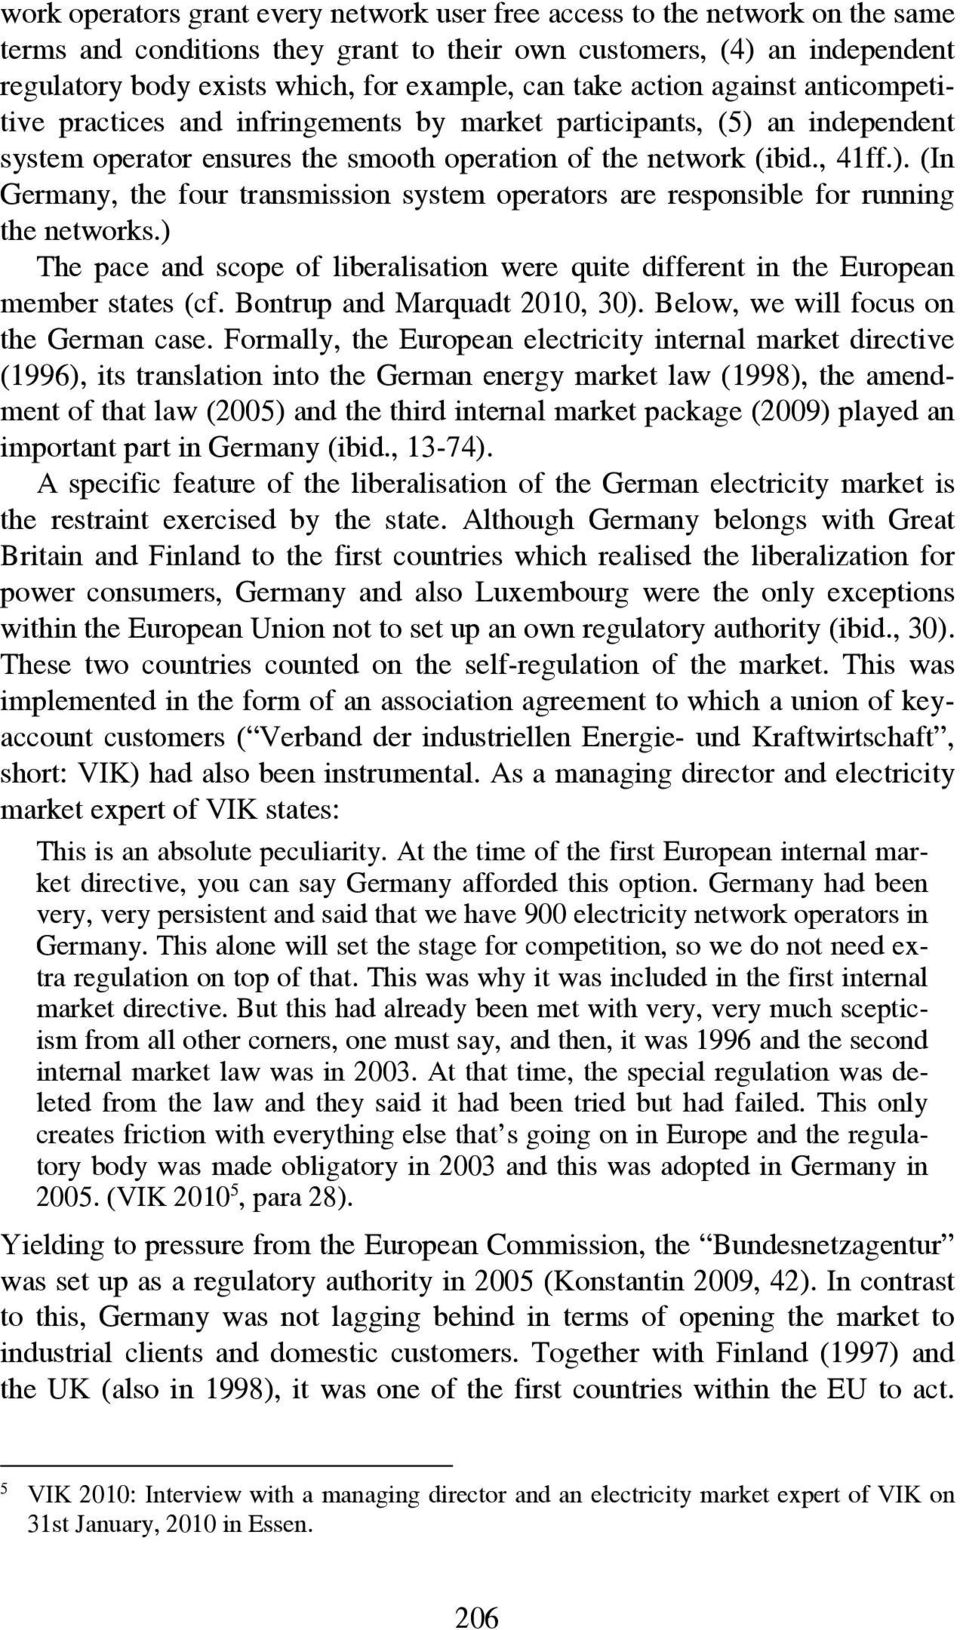 ) The pace and scope of liberalisation were quite different in the European member states (cf. Bontrup and Marquadt 2010, 30). Below, we will focus on the German case.